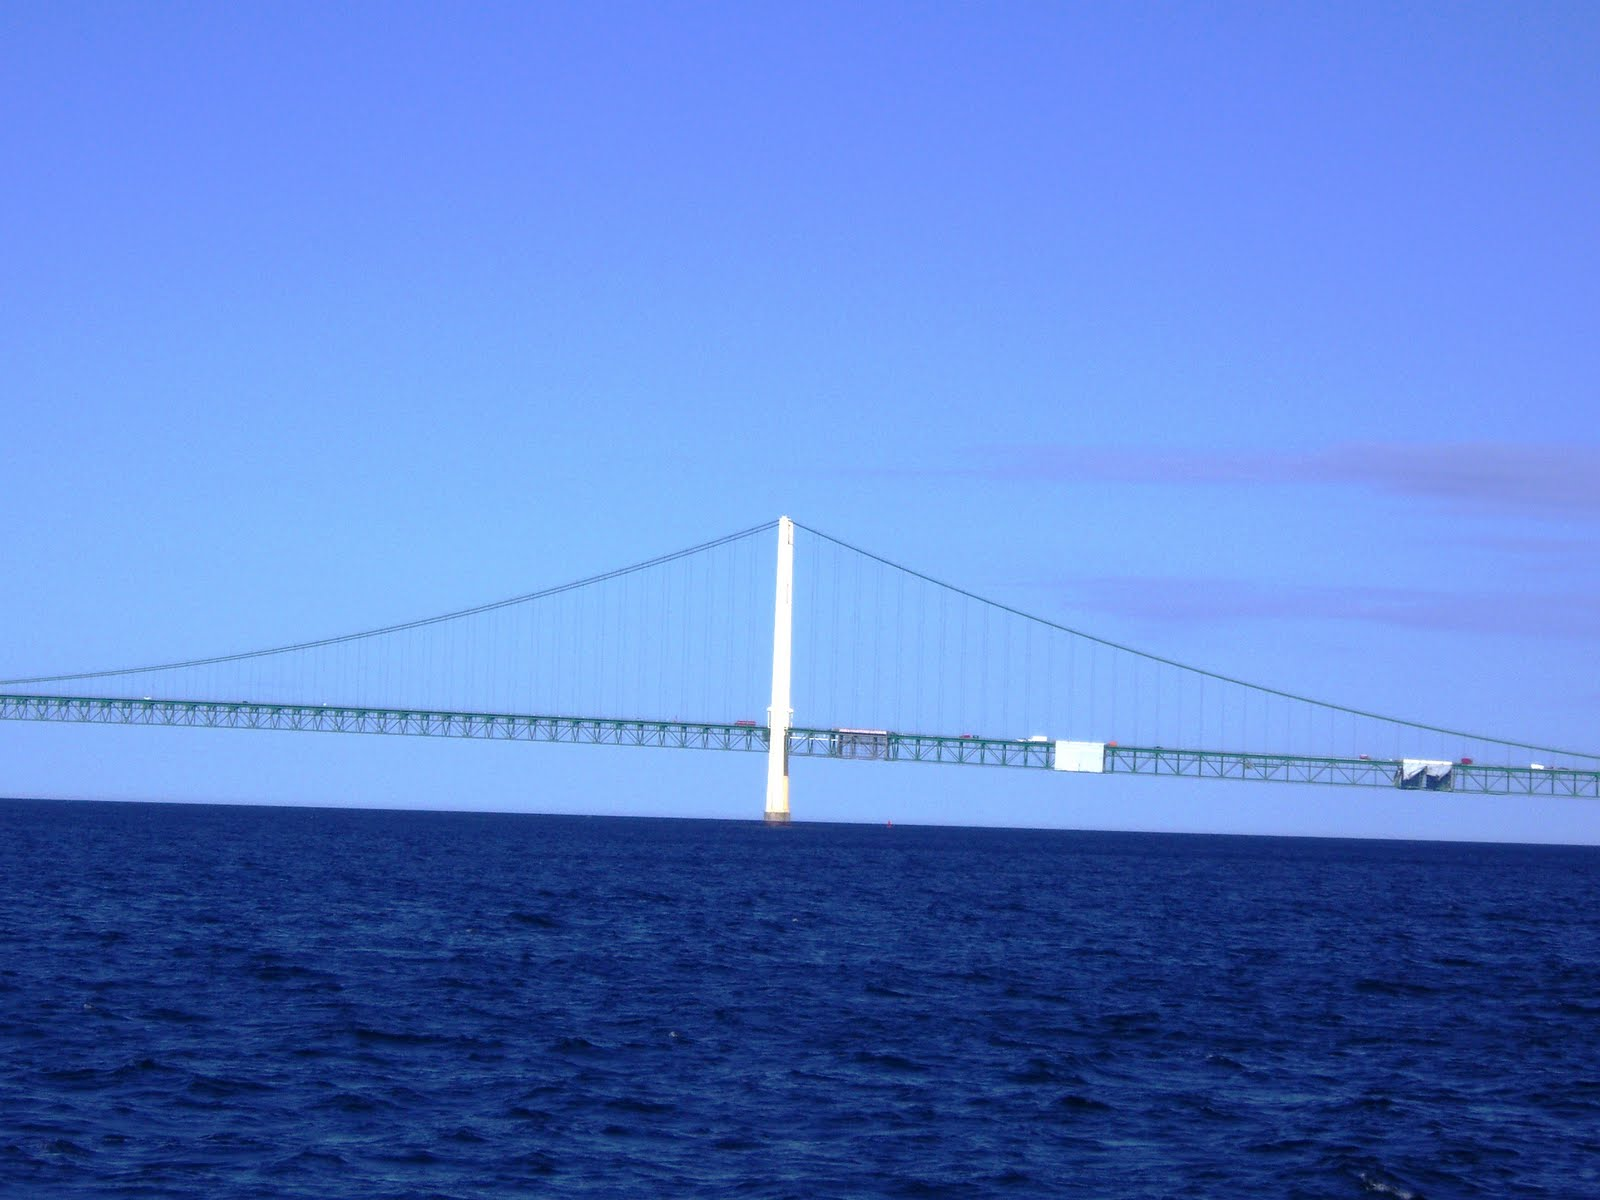 mackinac island mature dating site History of mackinac, mackinaw city, and mackinac island  mackinaw city history  this is one of this island's oldest structures, dating back to 1780 or earlier.